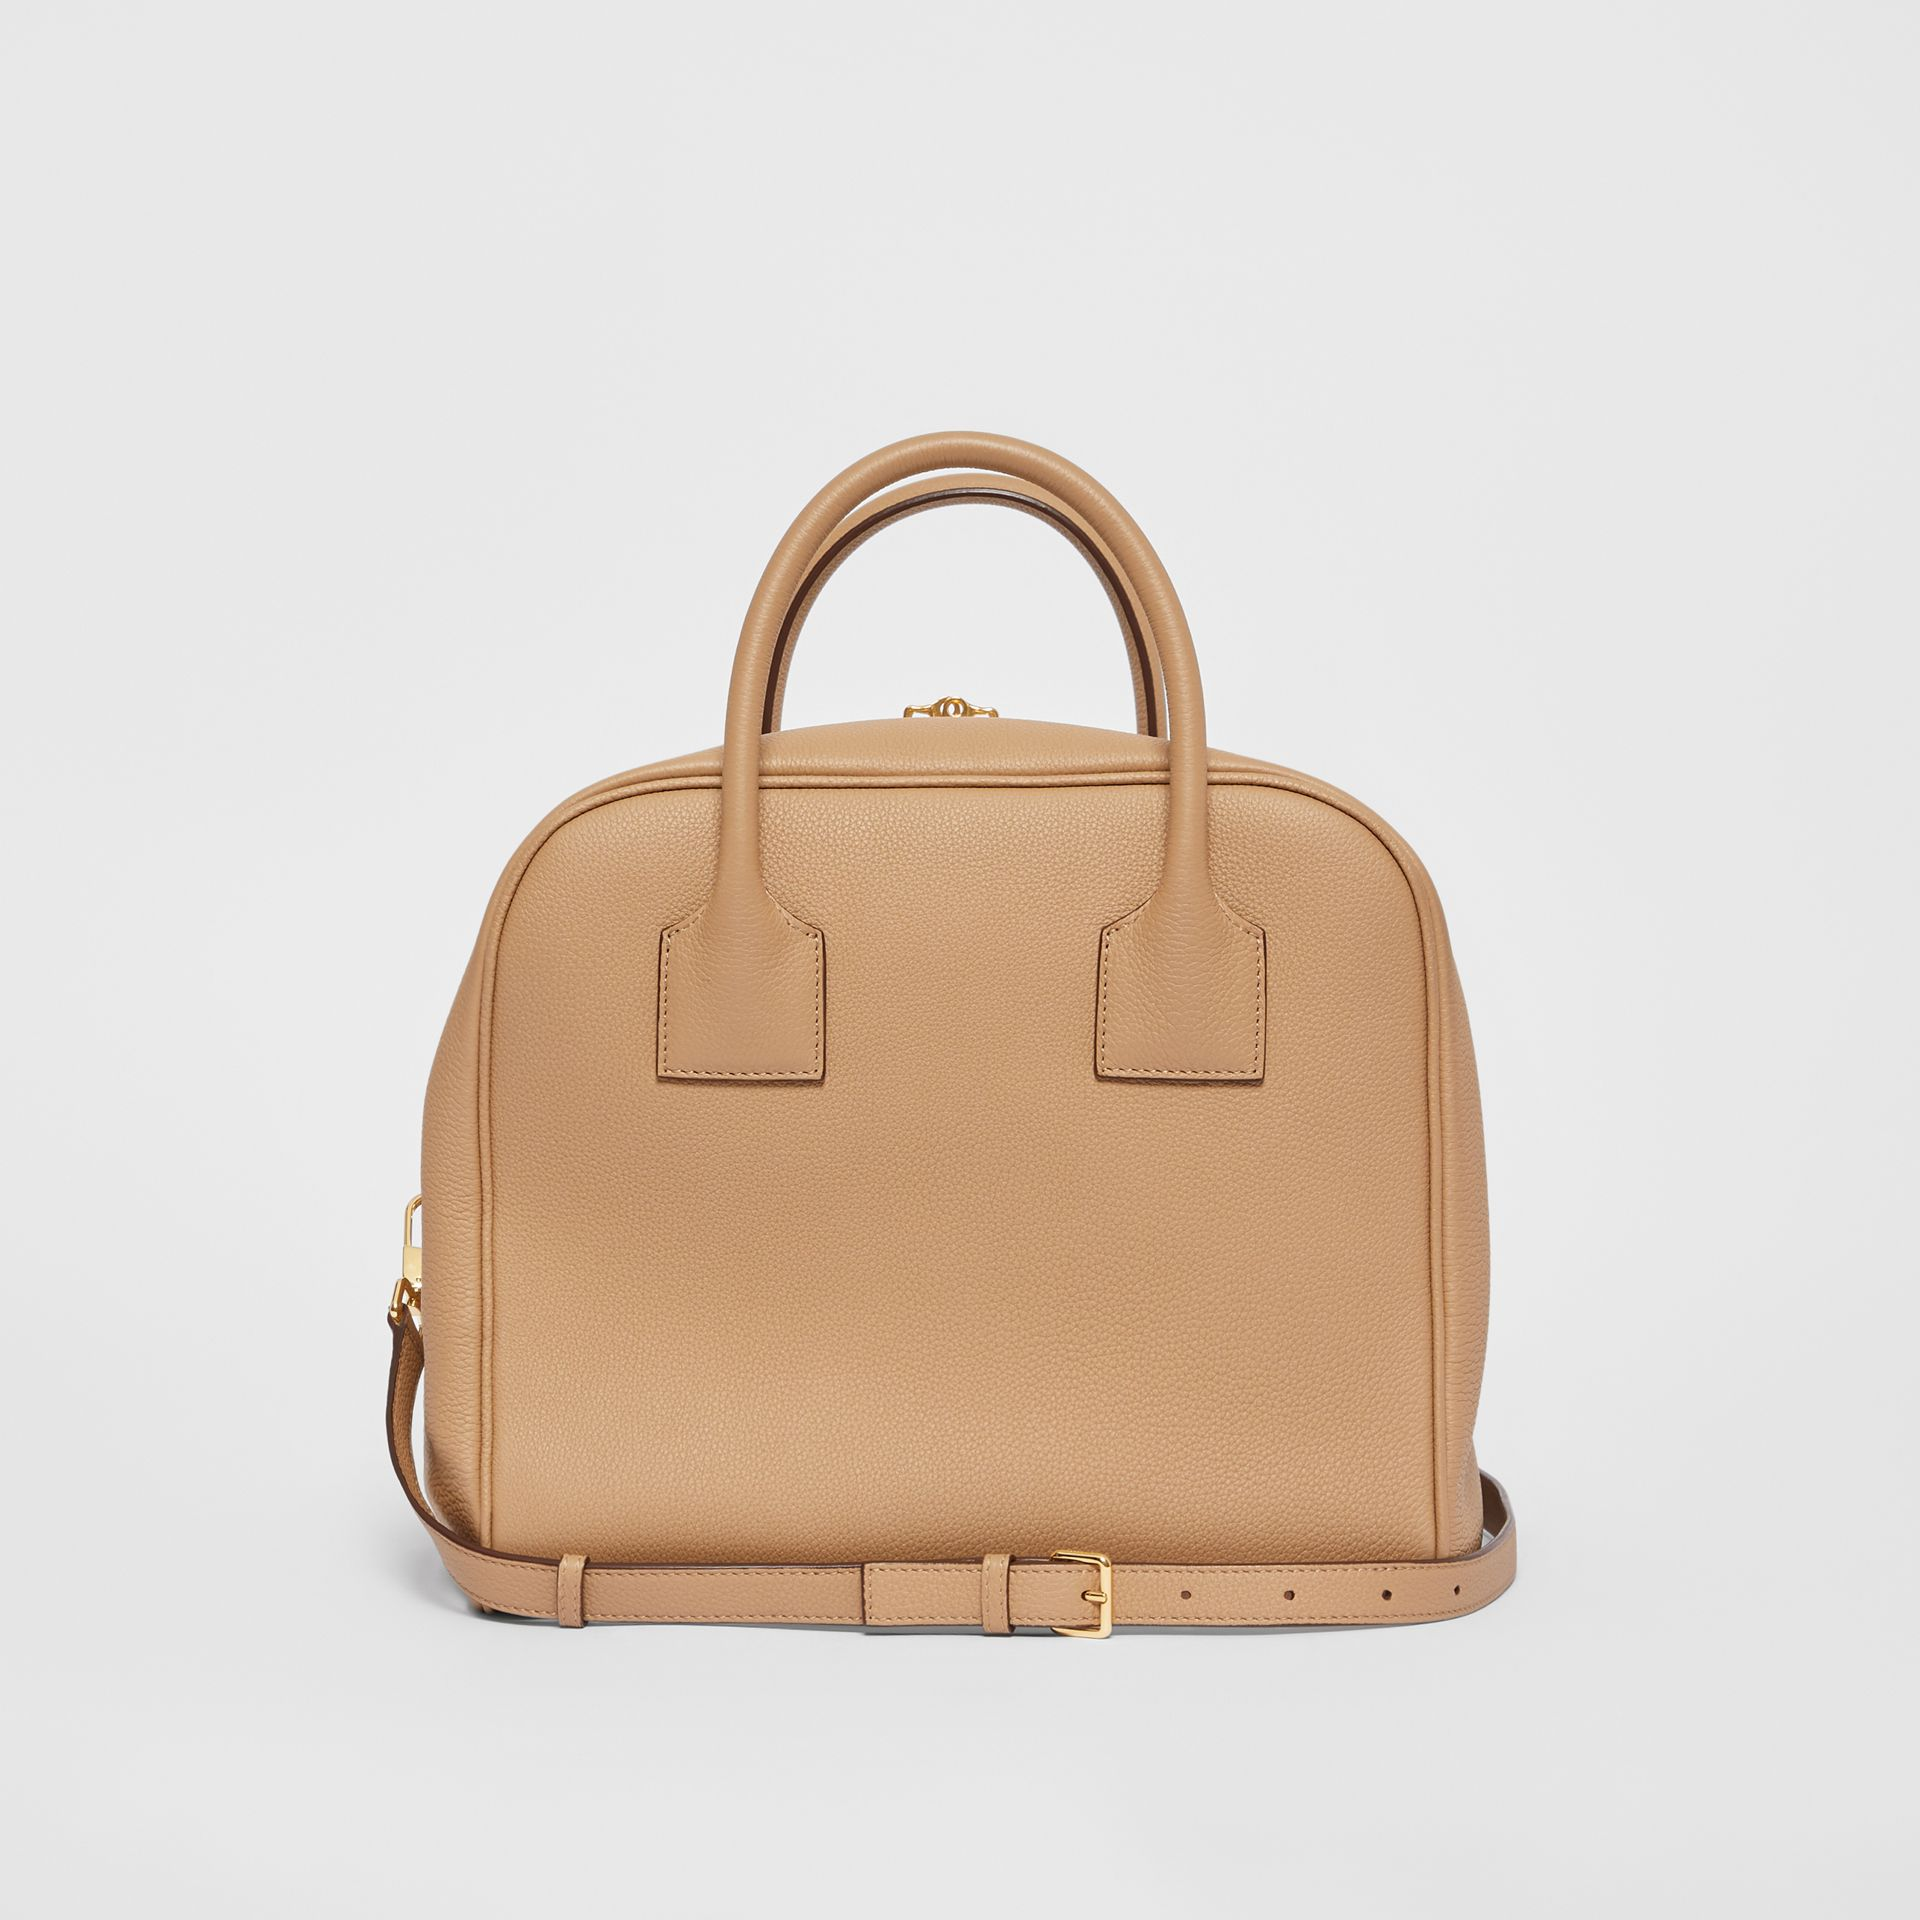 Medium Leather Cube Bag in Biscuit - Women | Burberry - gallery image 7